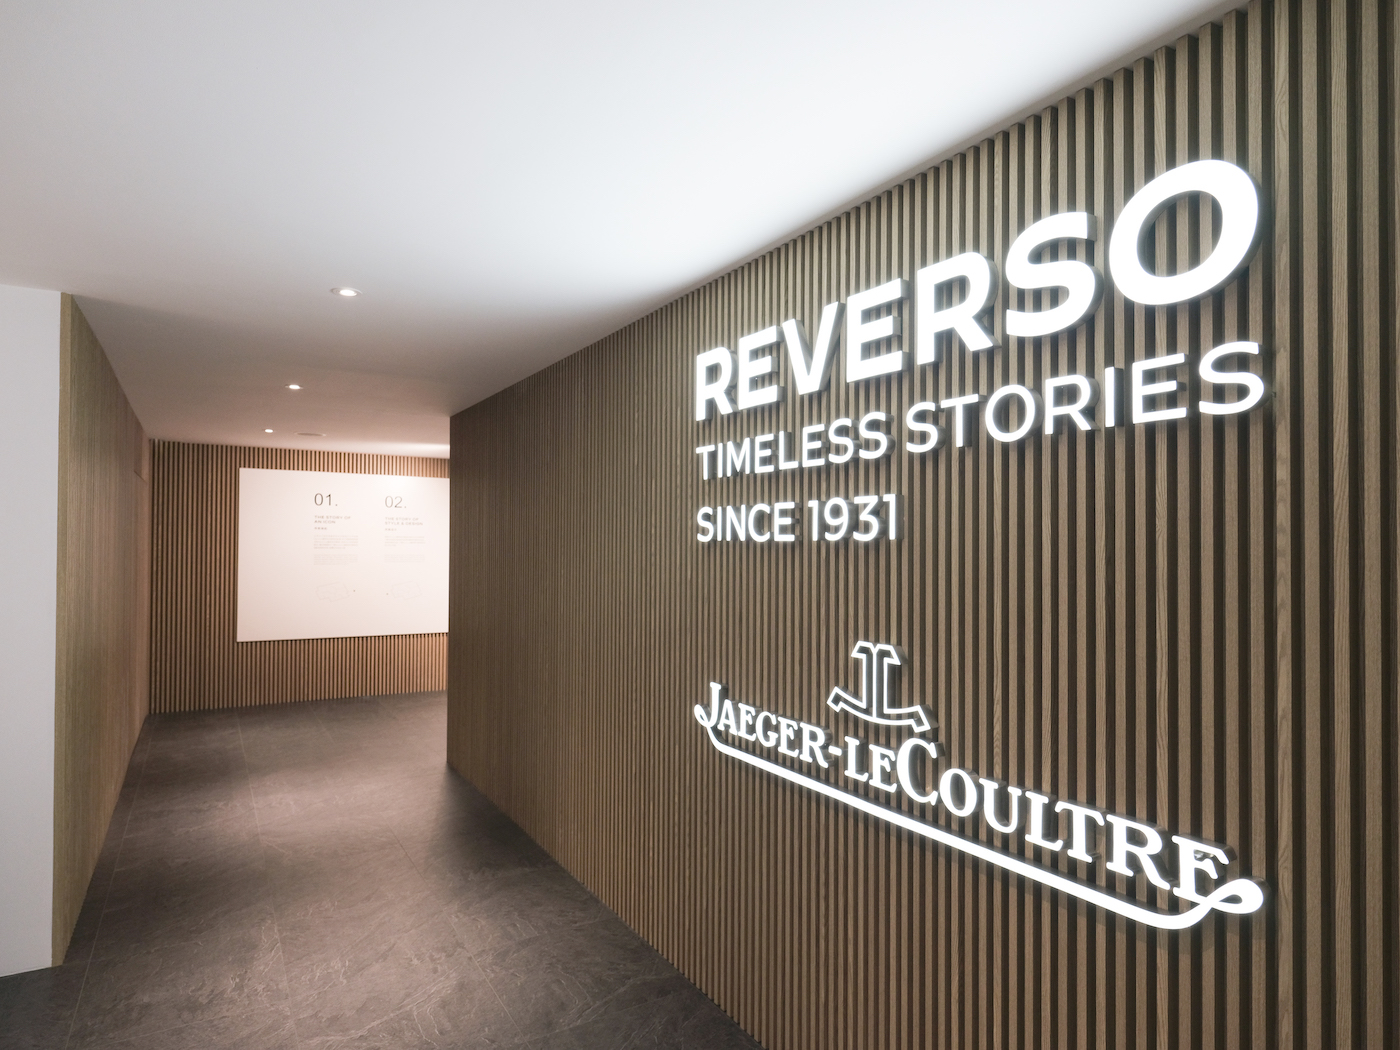 Jaeger-LeCoultre opens the 'Reverso Stories' exhibition in Shanghai